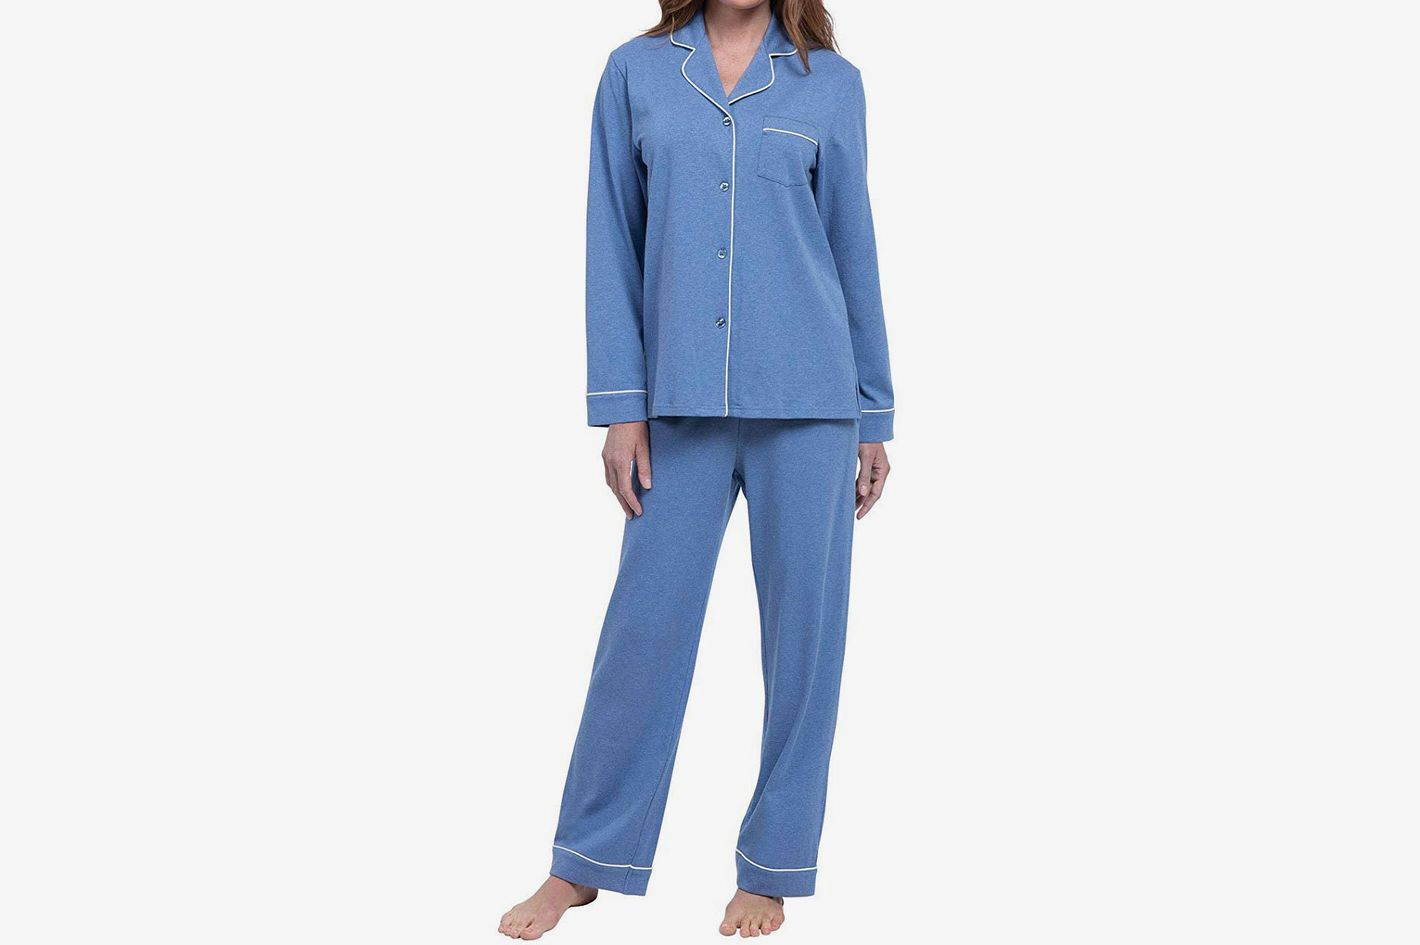 809bfeec66c6 PajamaGram Pajamas for Women - Cotton Jersey Womens Pajamas